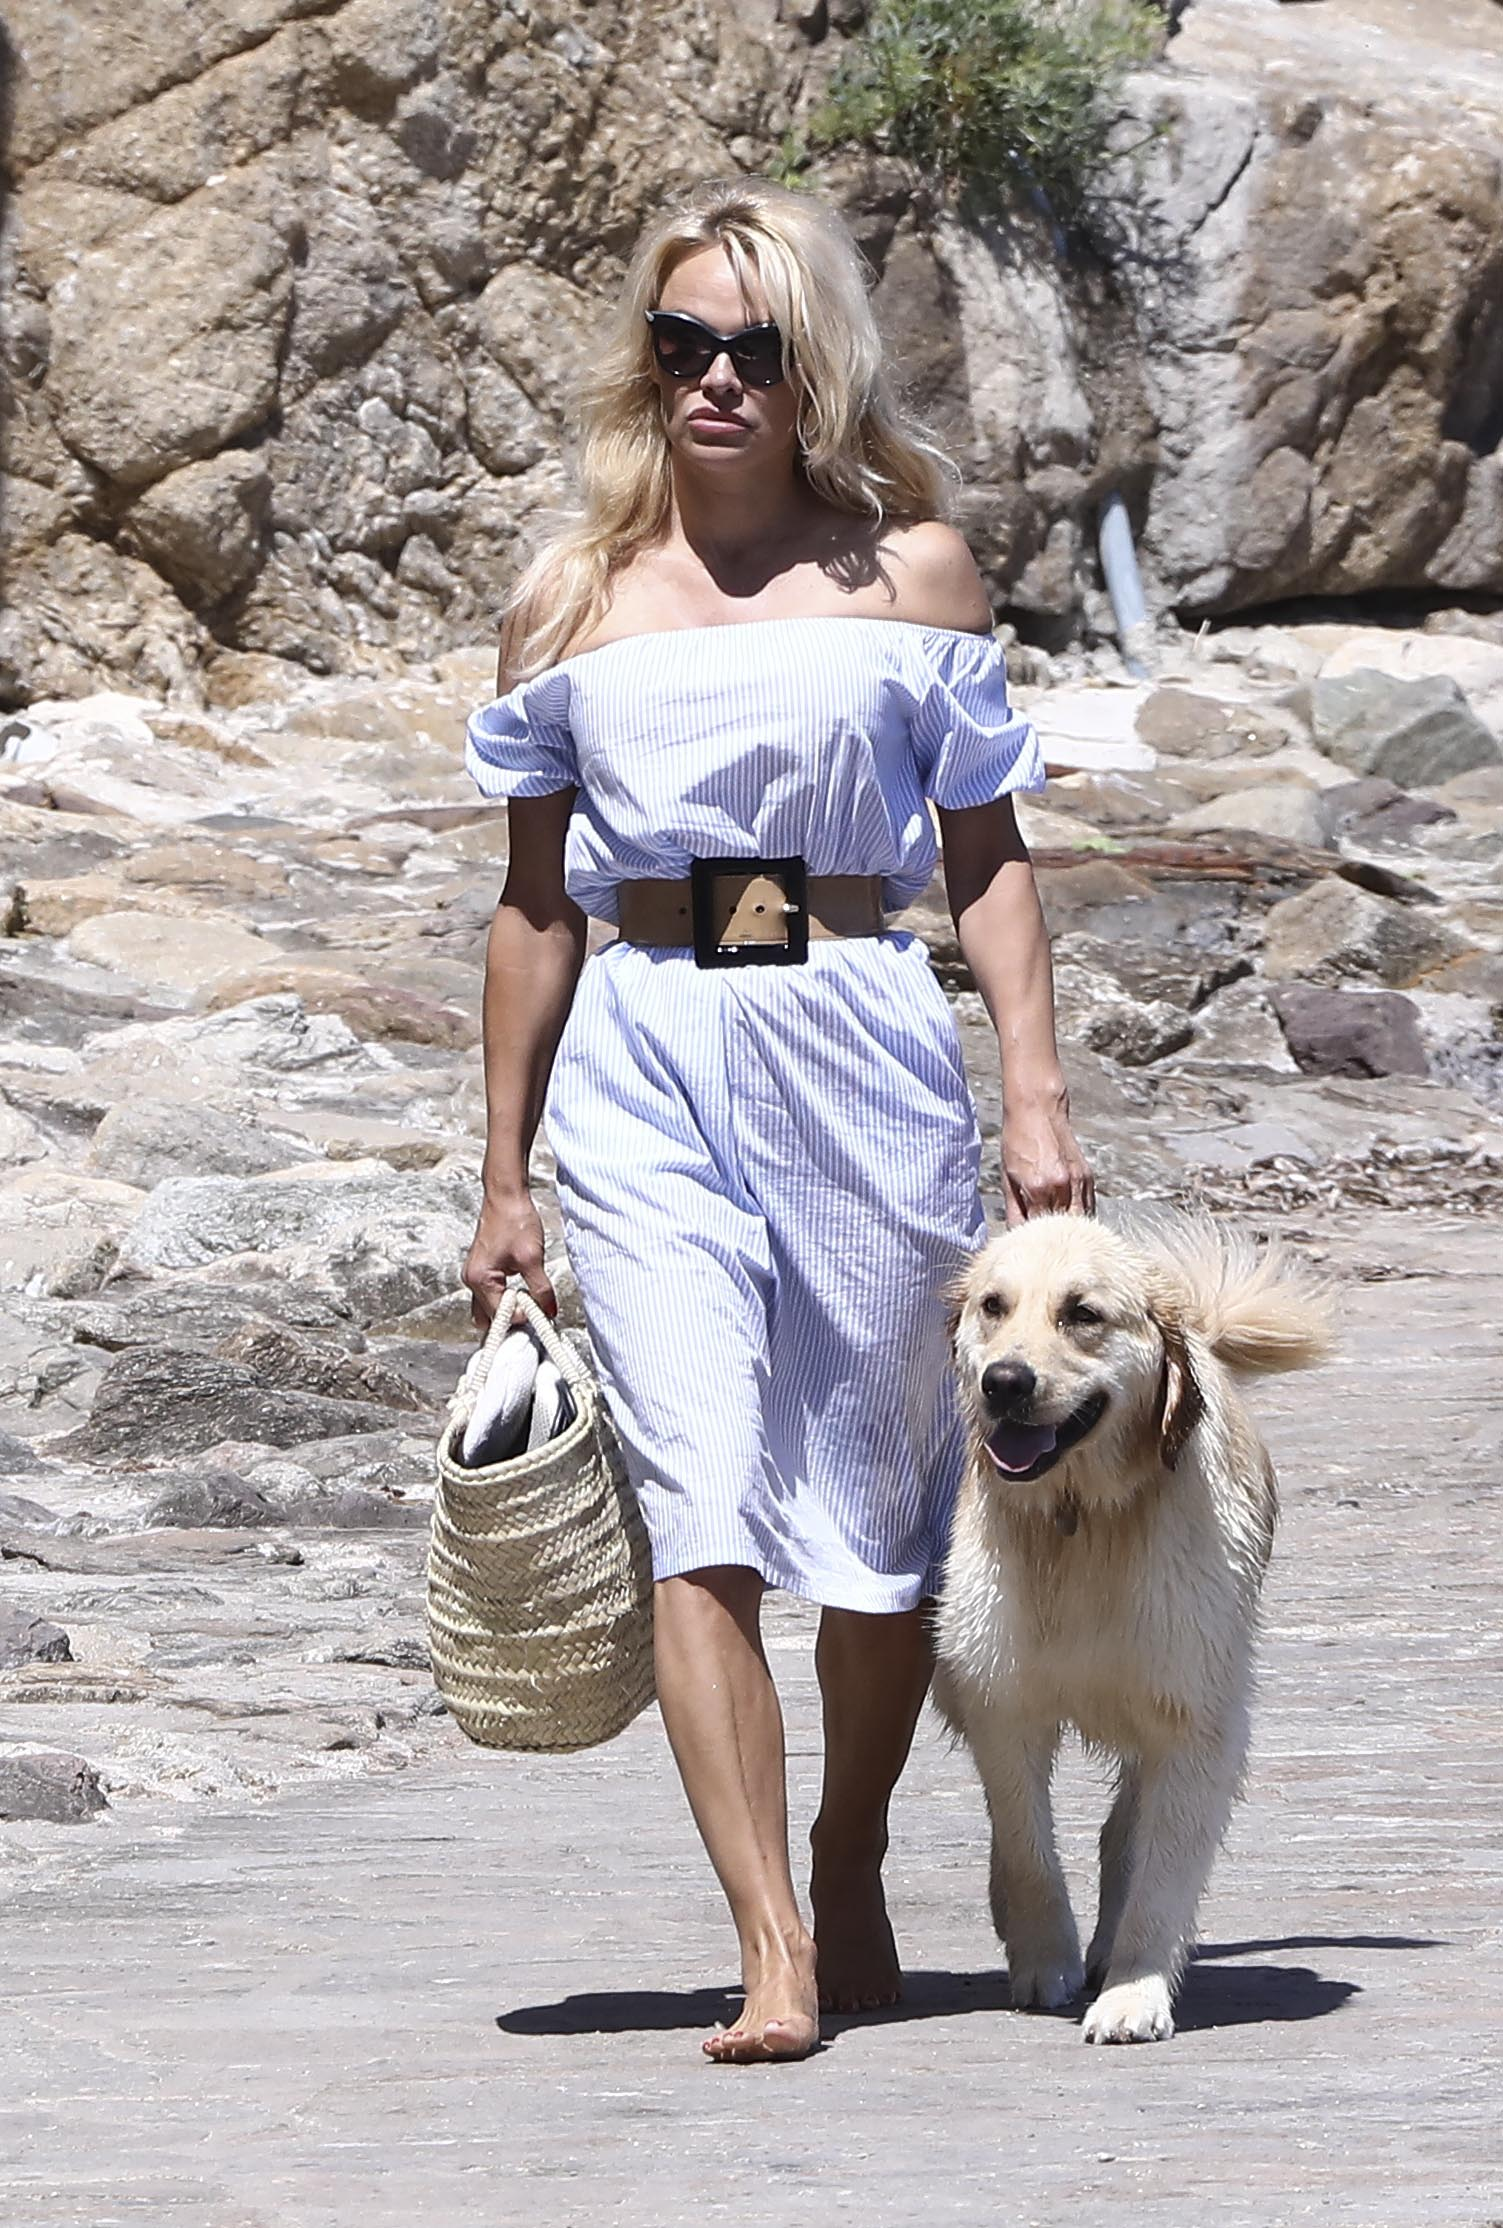 Pamela Anderson Shows Off her Curves in Chic Dress as she Enjoys a Day in Saint Tropez with Son